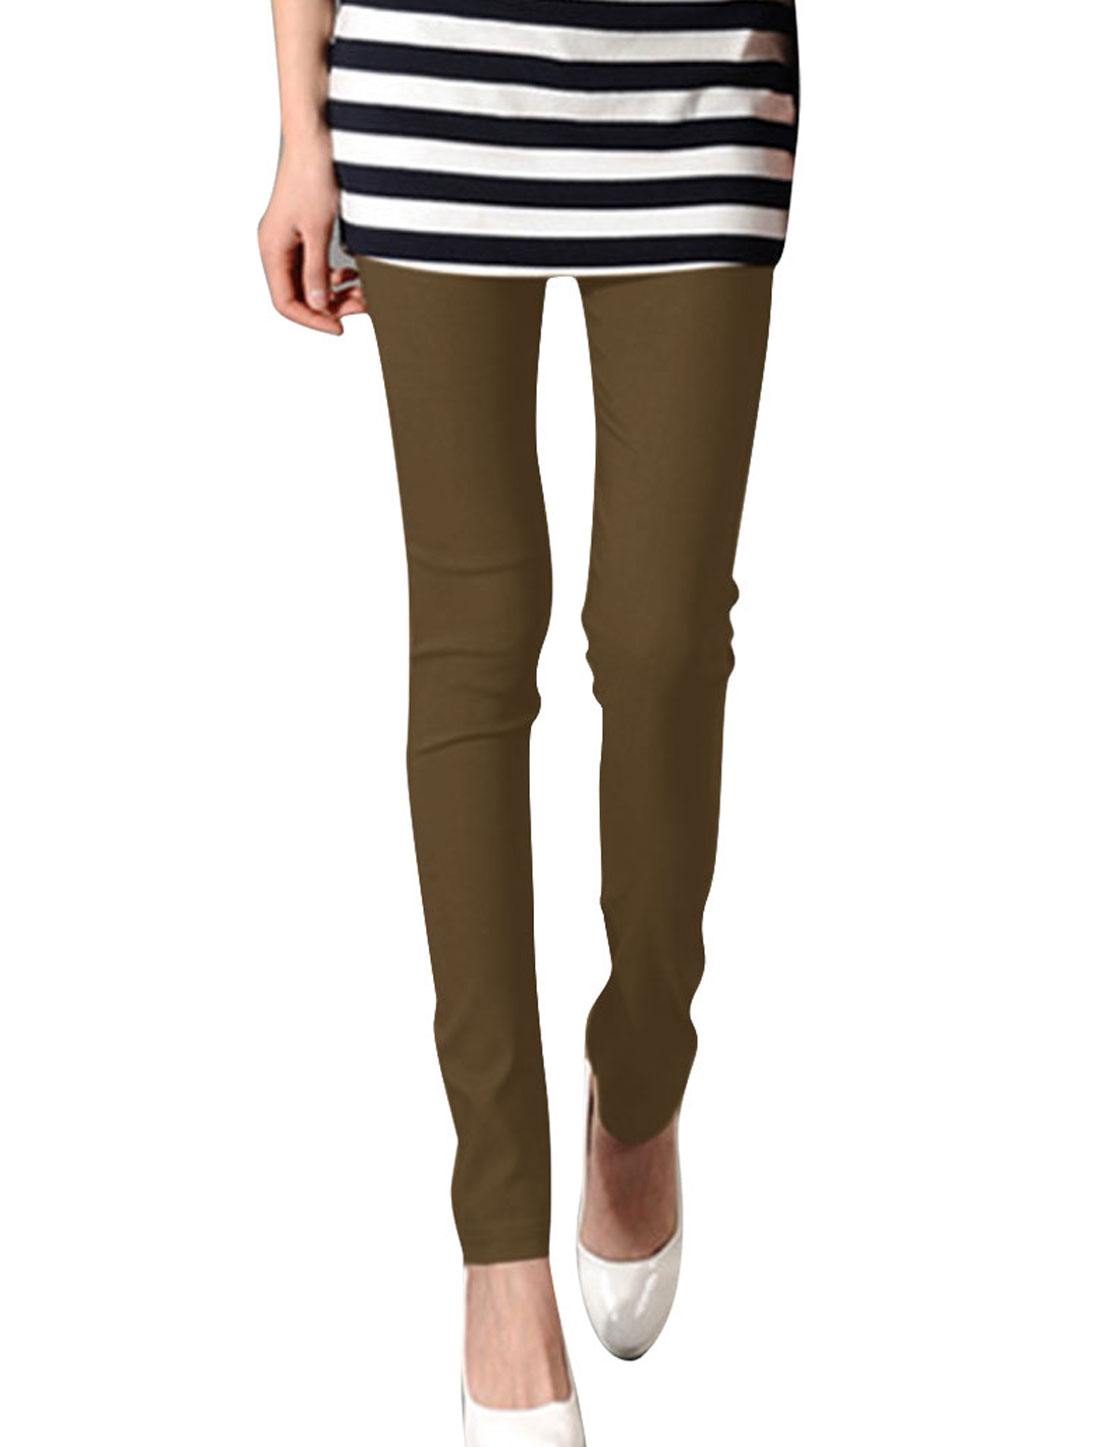 Dark Khaki XS Form-fitting Full Length Slim Fit Casual Legging for Ladies